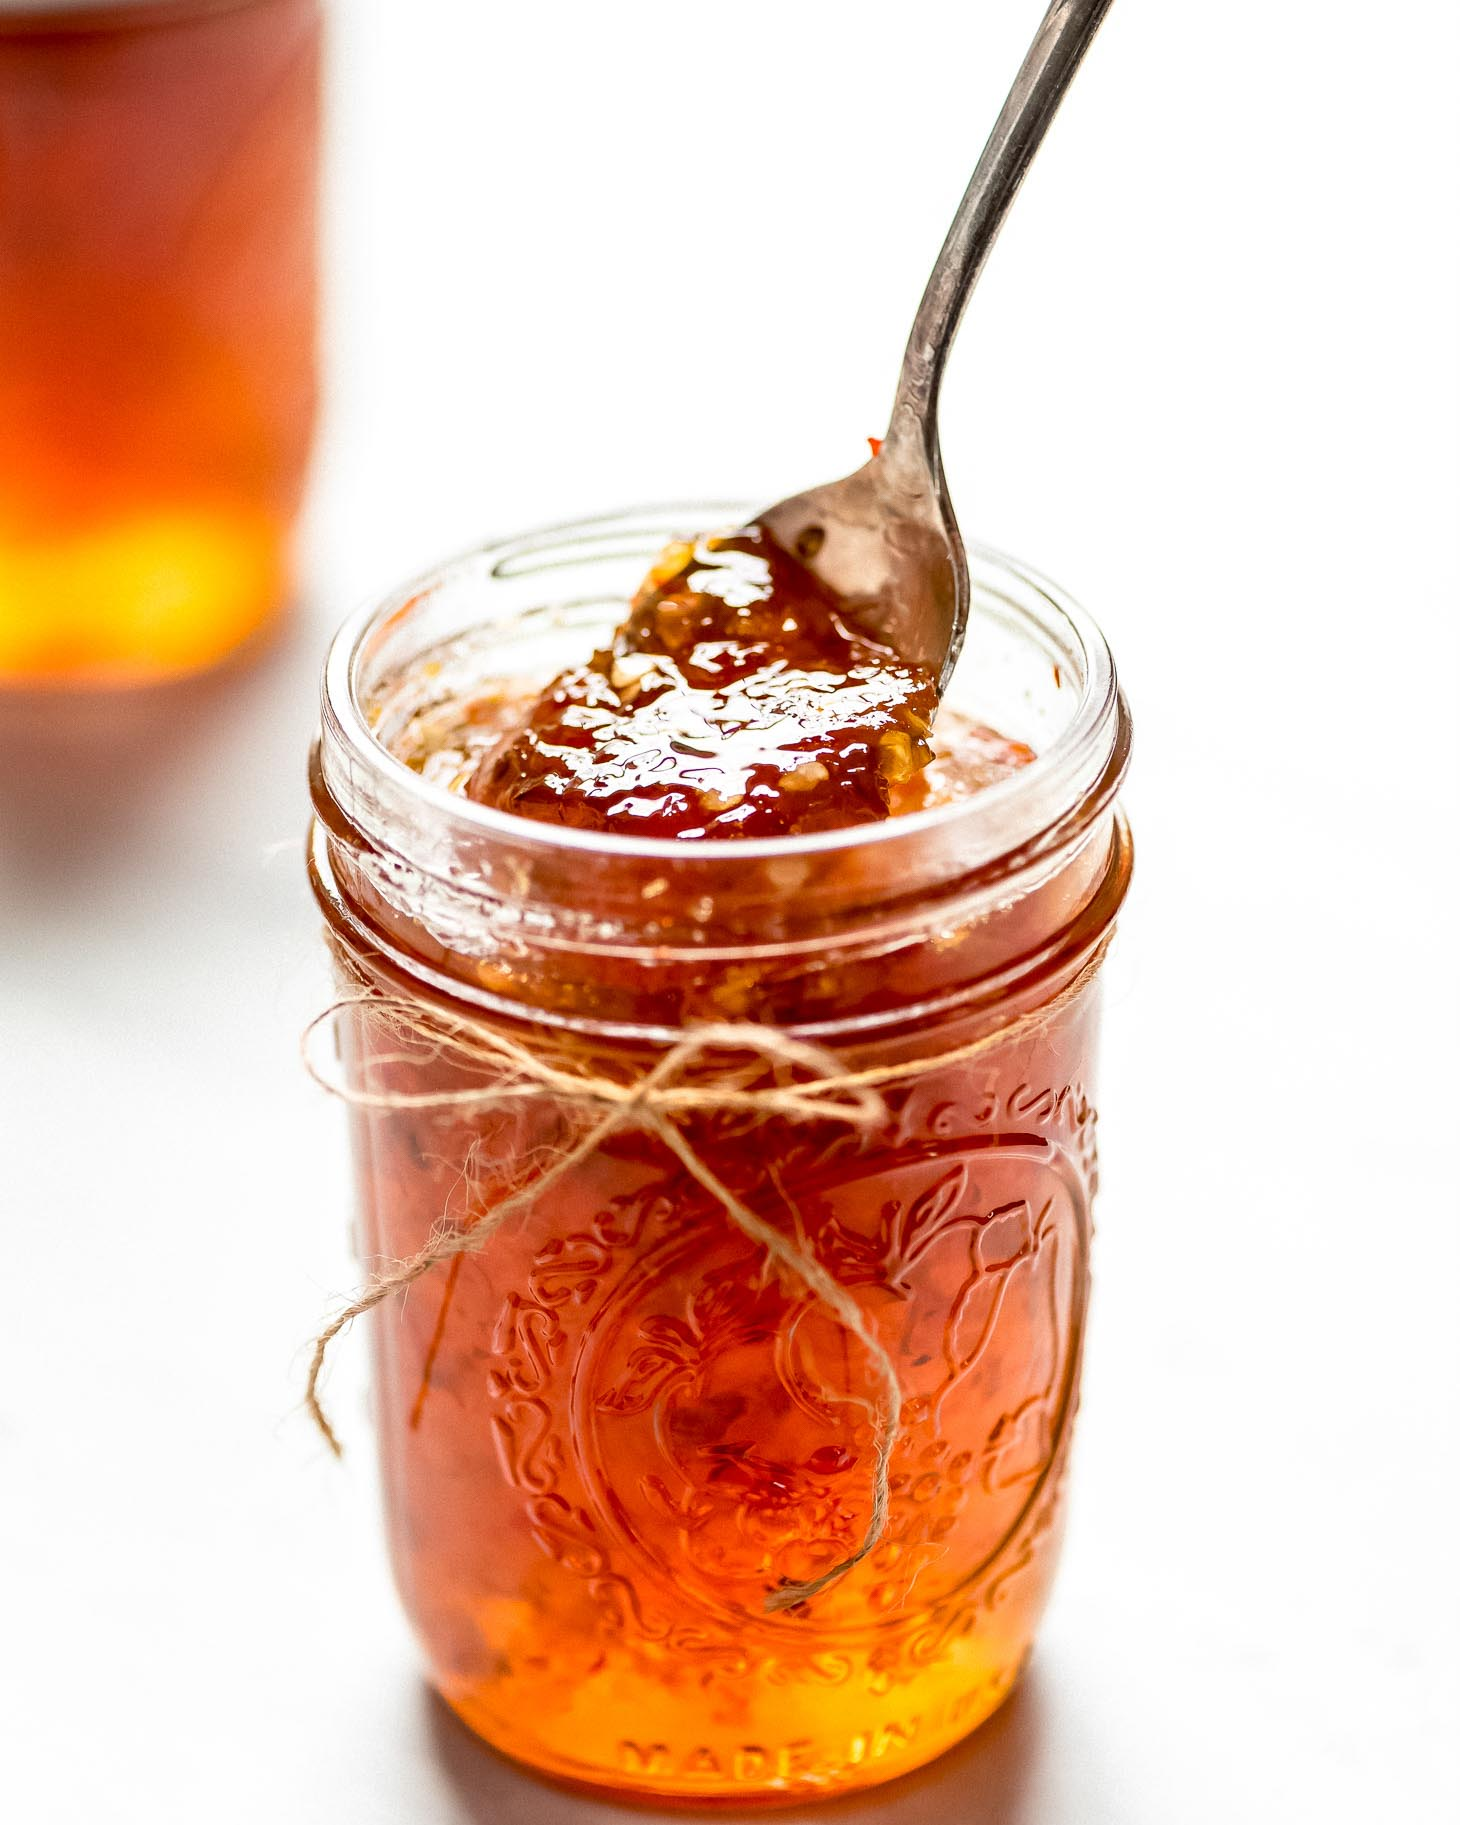 Hot pepper jelly recipe in jar